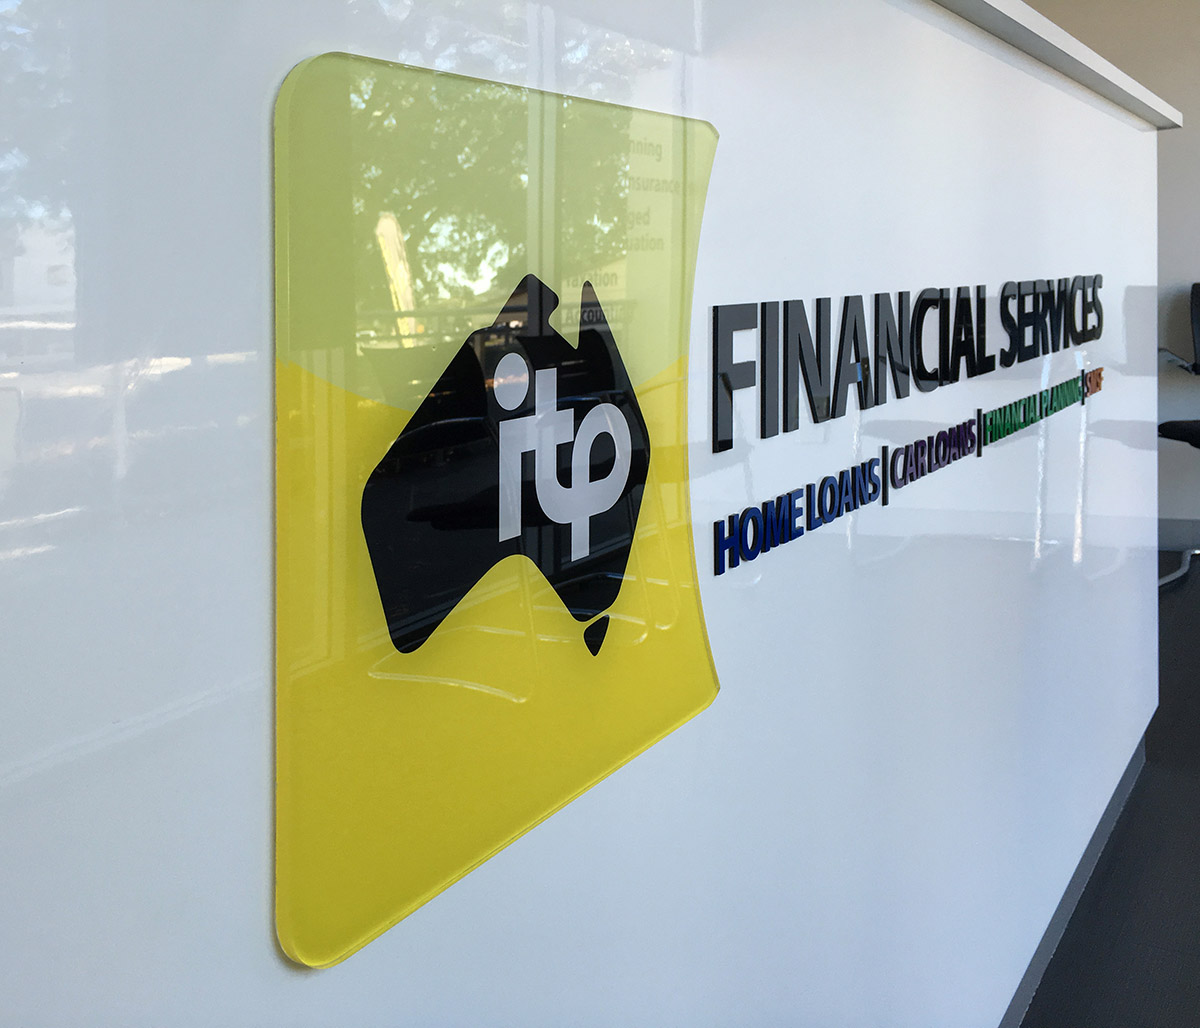 ITP office 3D logo signage design by FOX DESIGN